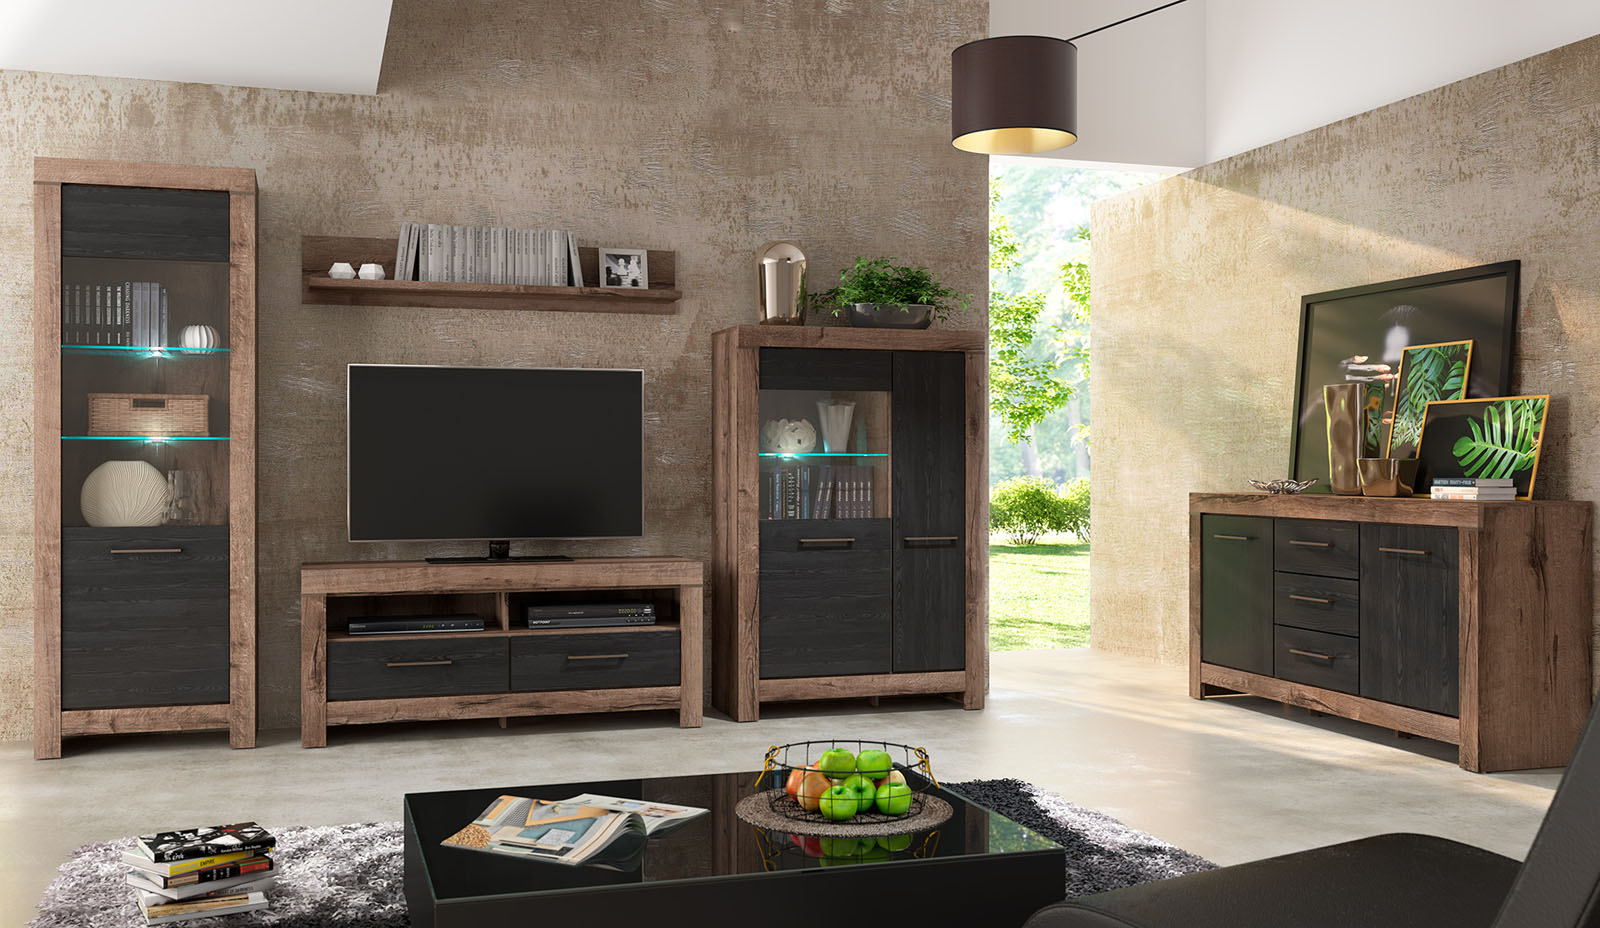 These Furniture Have Renowned Accessories With A Quiet House As Standard.  Create A Stylish And Trendy Living Room Today Using Elements From The Balin  ...